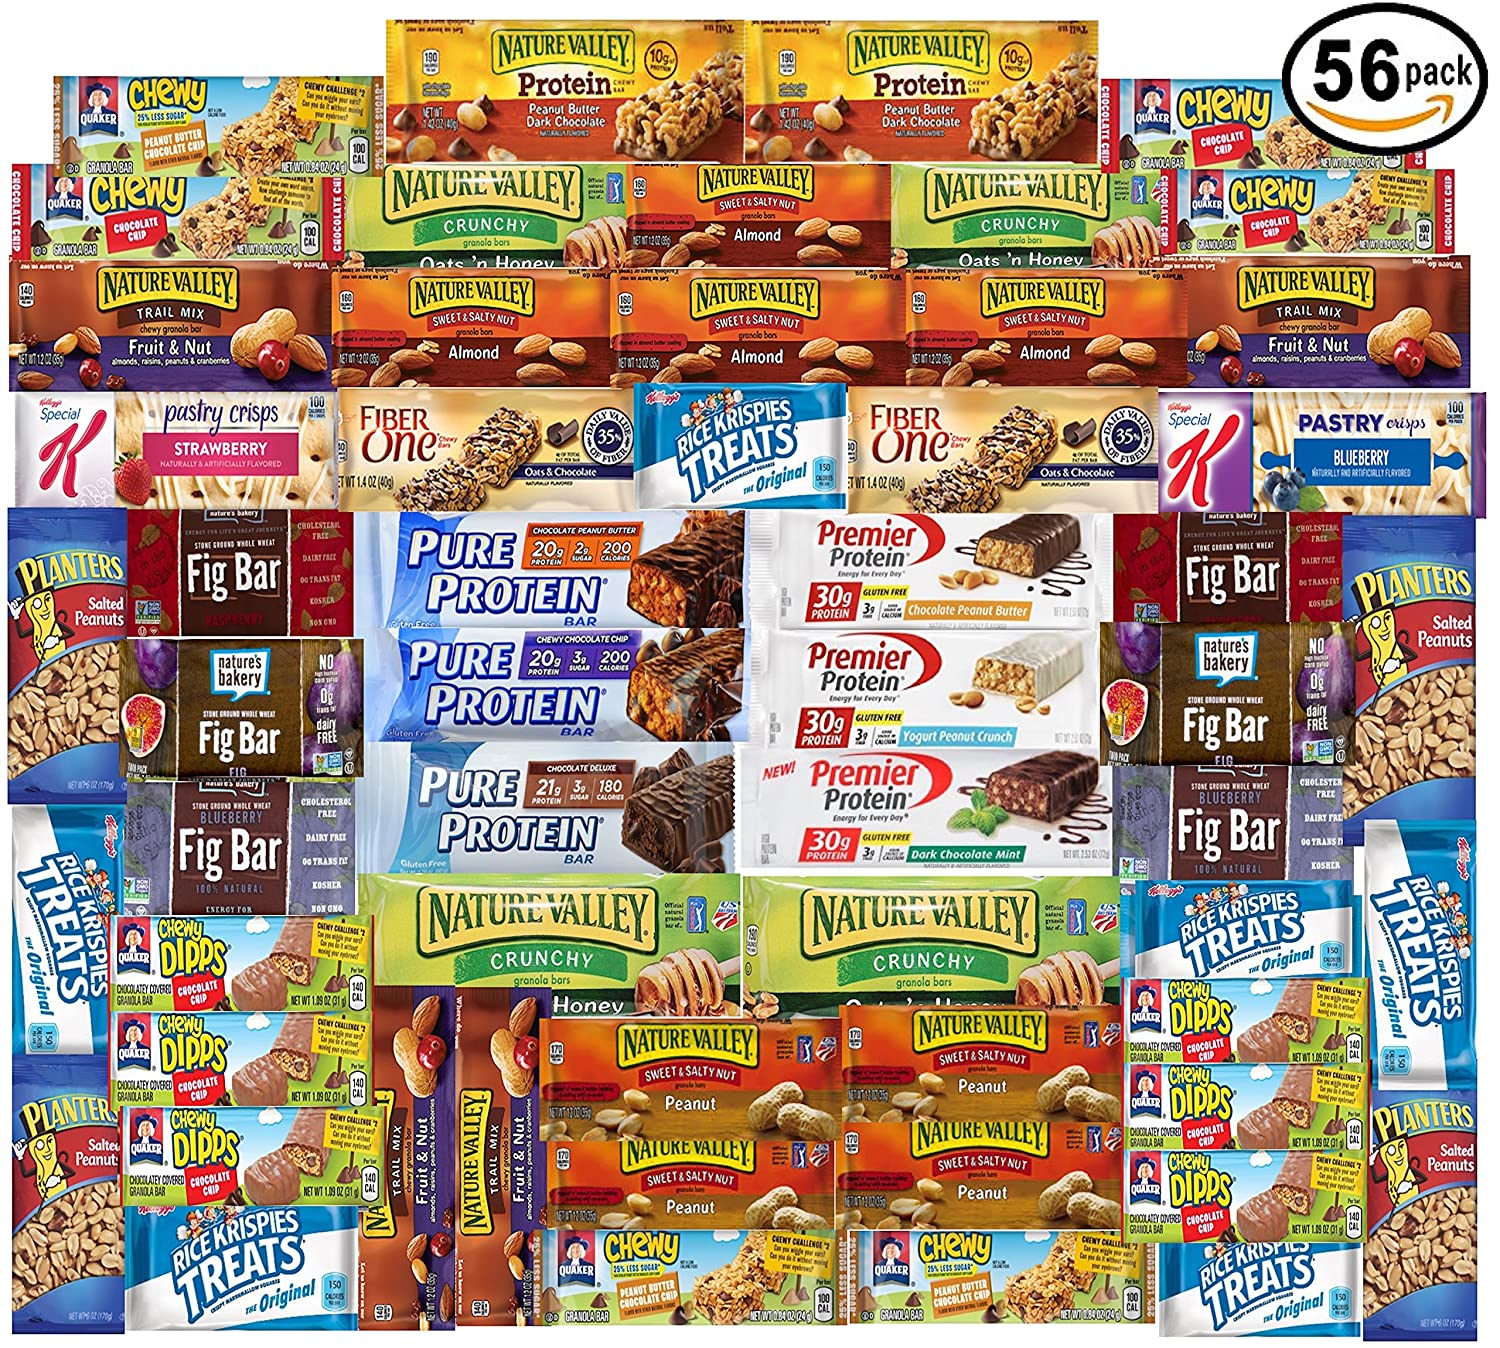 Ultimate Healthy Fitness Box - Protein & Healthy Granola Bars Sampler Snack  Box (56 Count) - Care